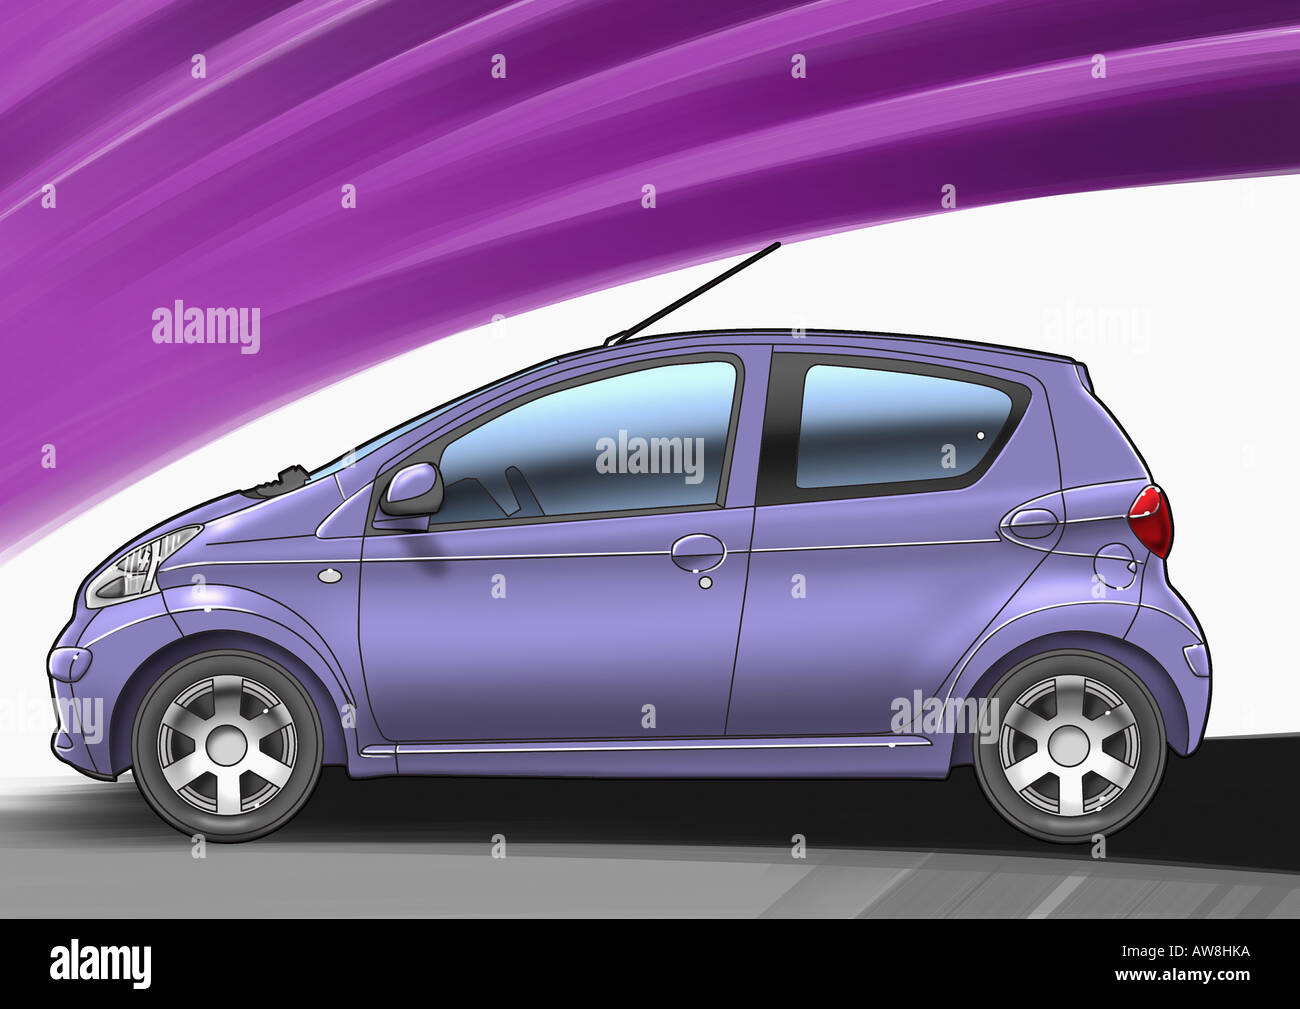 purple small sized four door car with purple and white background